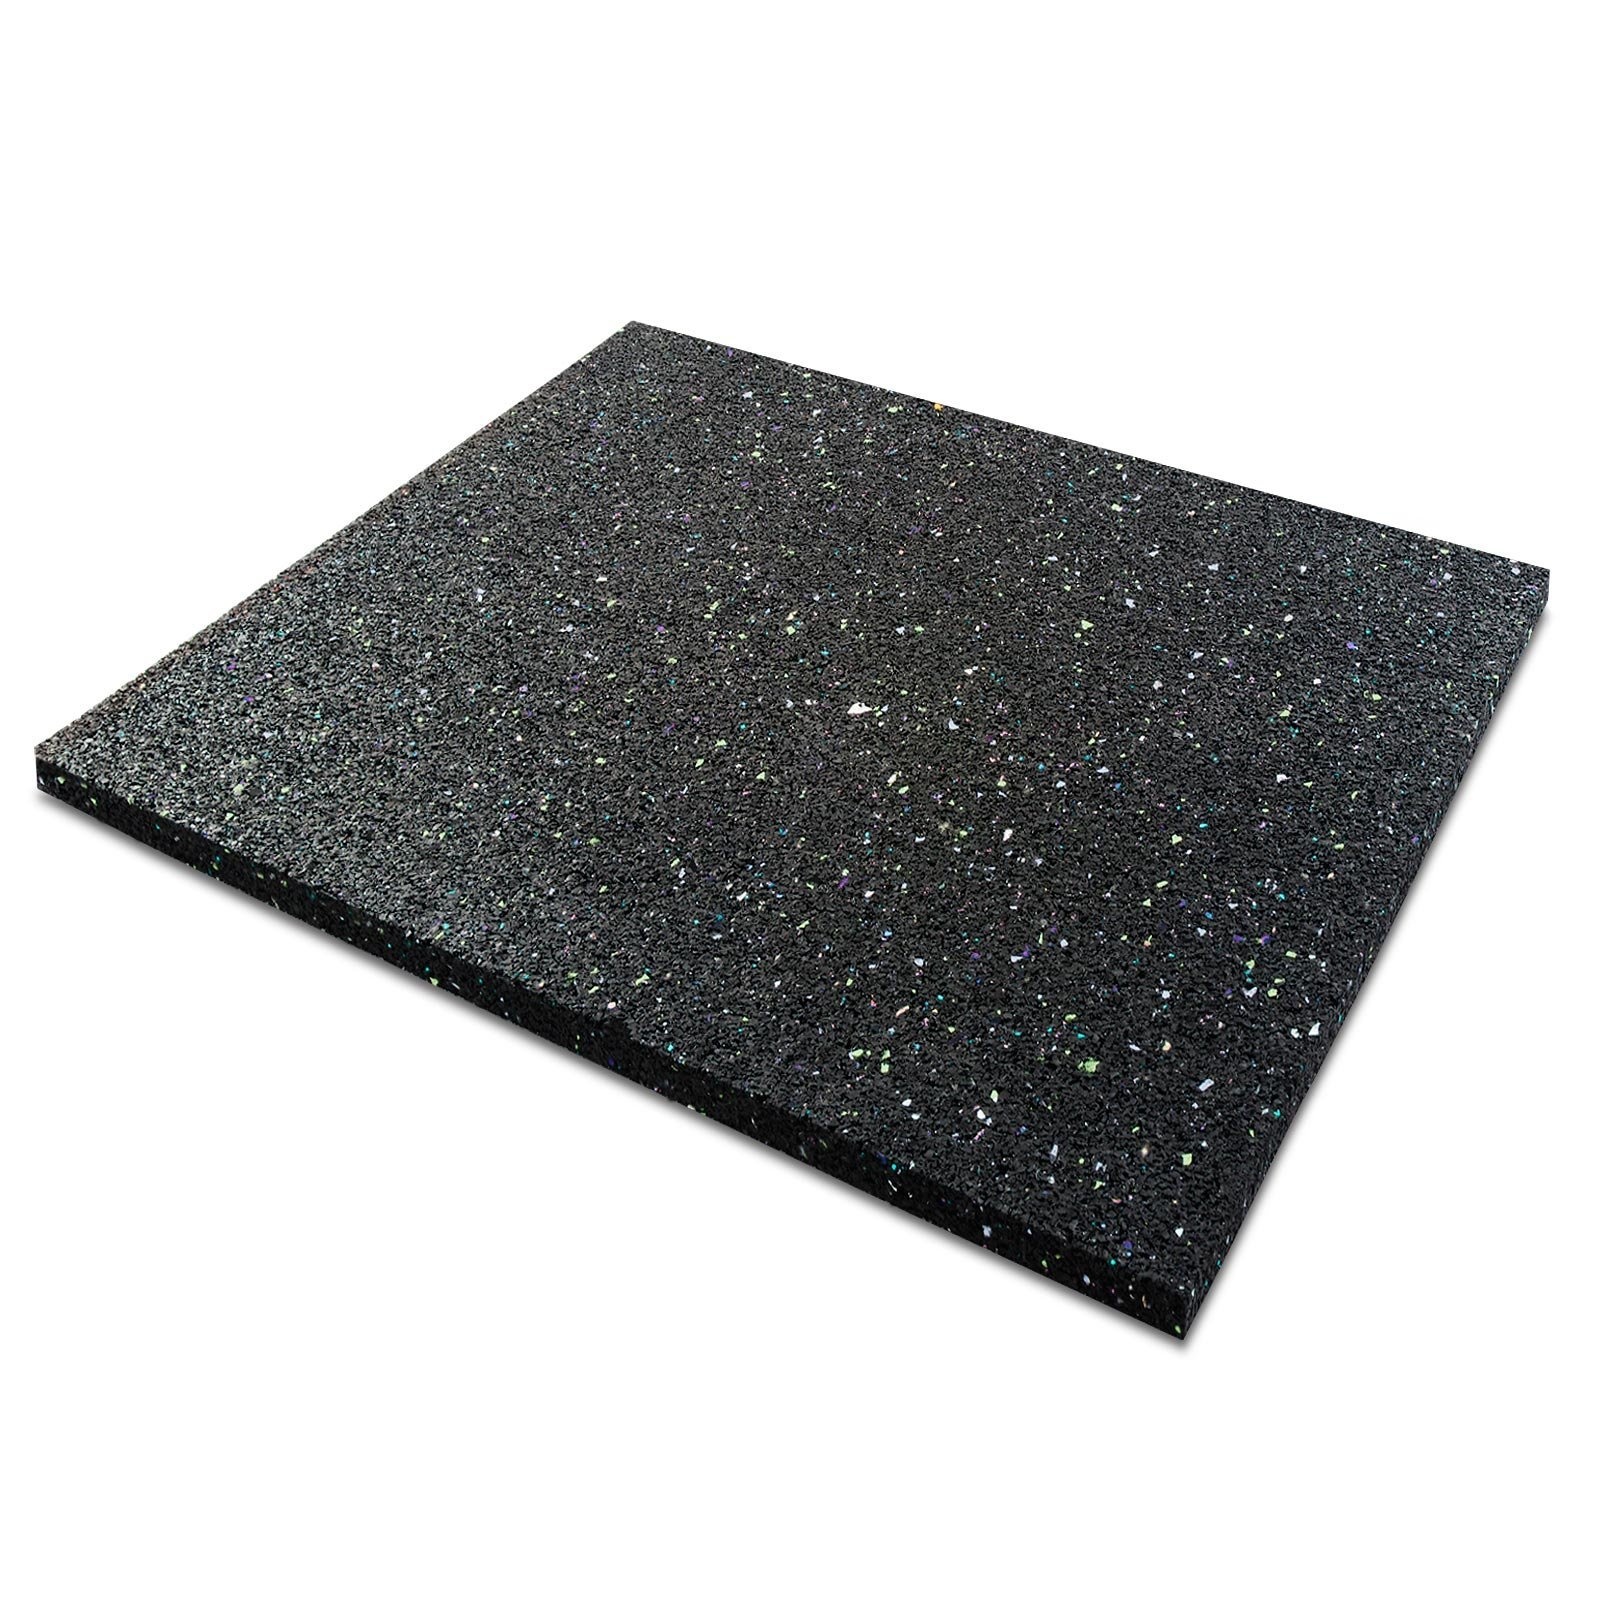 casa pura Anti-Vibration Pad | Rubber Vibration Isolator Mat | Matting for Washing Machines, Washers, Dryers and Appliances | Available in 6 Sizes | 24x24x0.4''